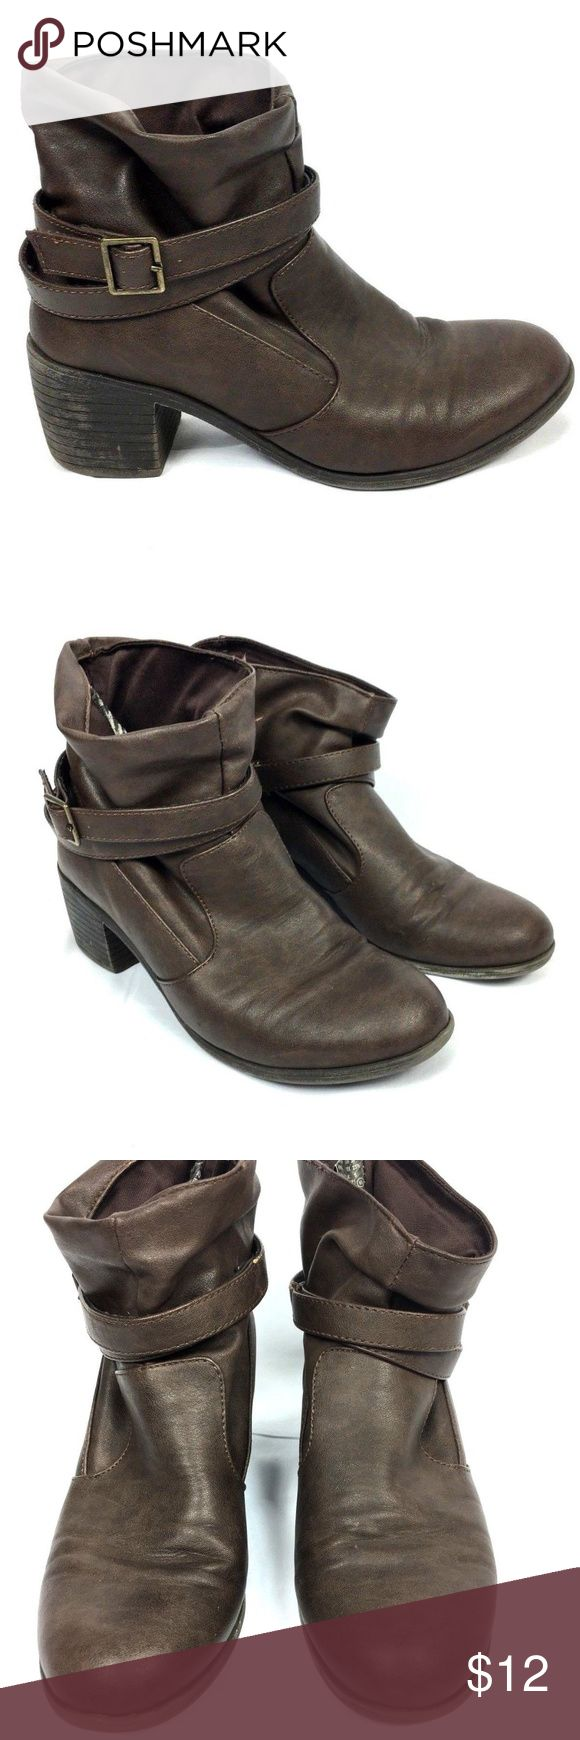 American Eagle Slouch Ankle Boots 6.5 Brown American Eagle womens slouch ankle boots Size 6.5 Gently loved - no holes or excessive wear - gently loved Light wear on inner sides of shoes - all pictured Cute buckle and straps American Eagle Outfitters Shoes Ankle Boots & Booties